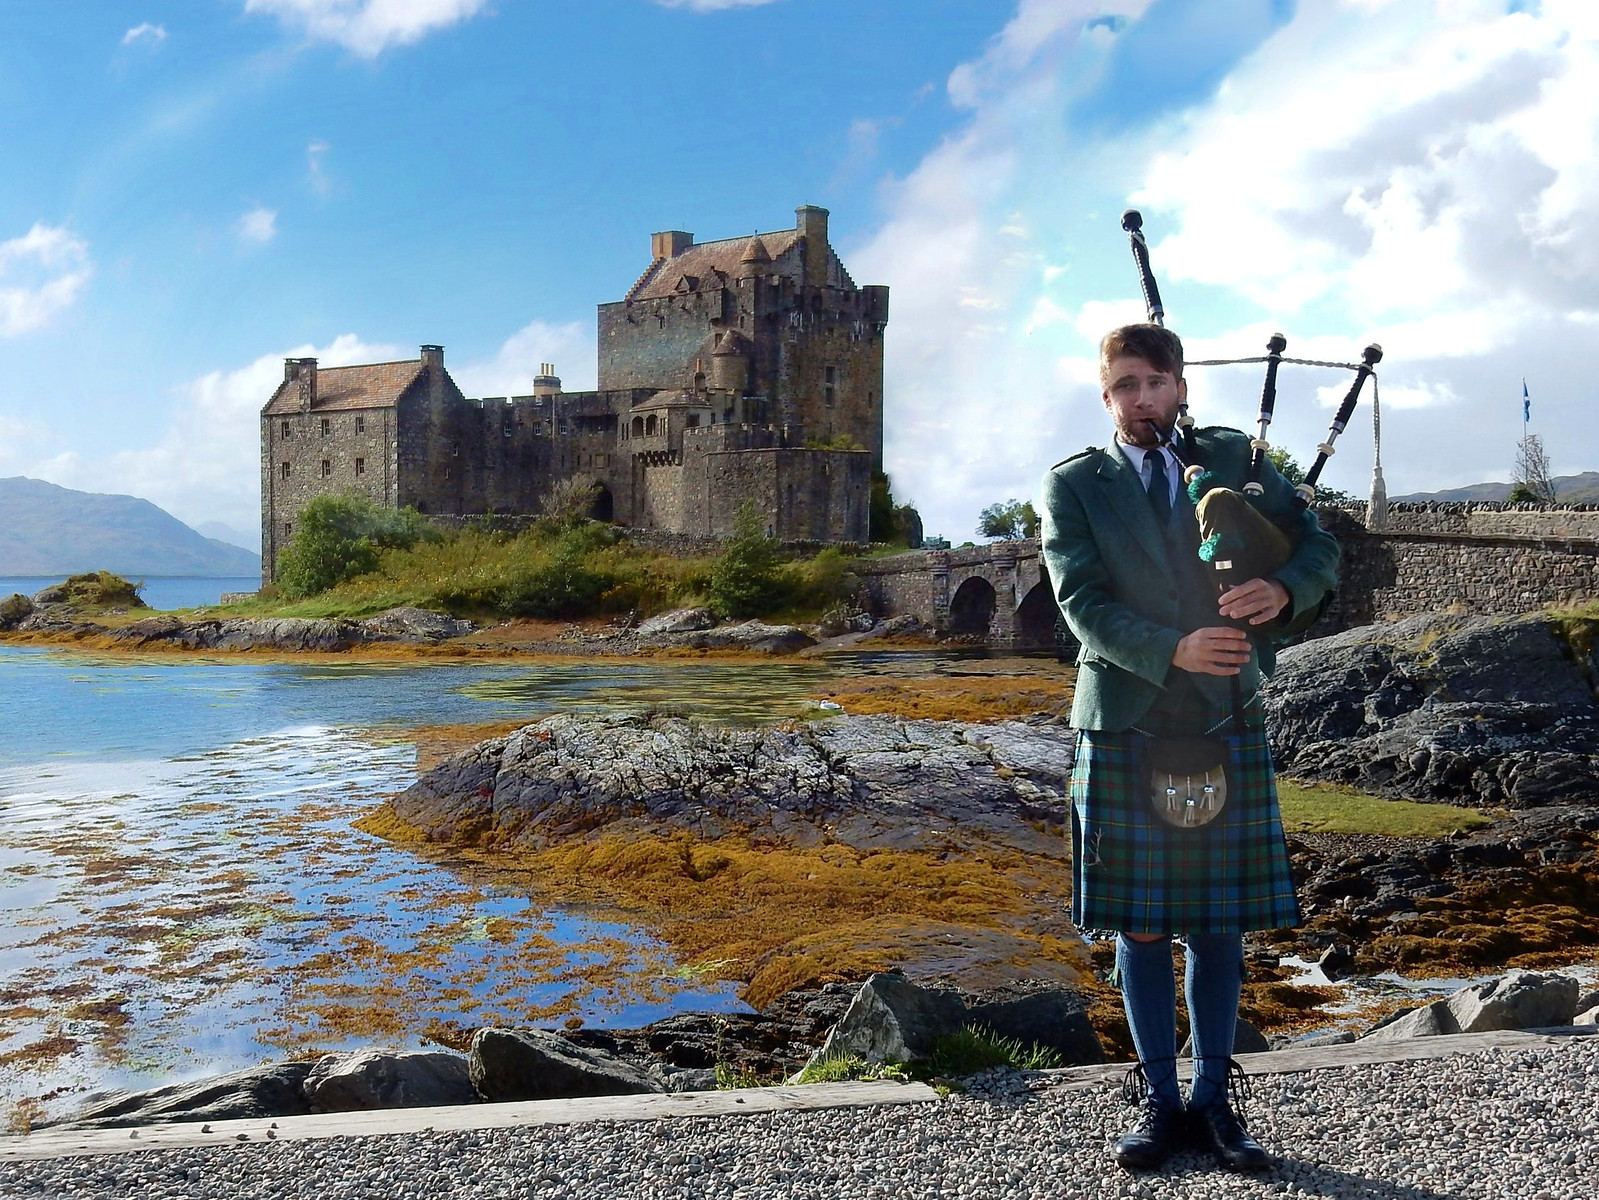 Piper in front of Eilean Donan Castle. Credit Marshalhenrie